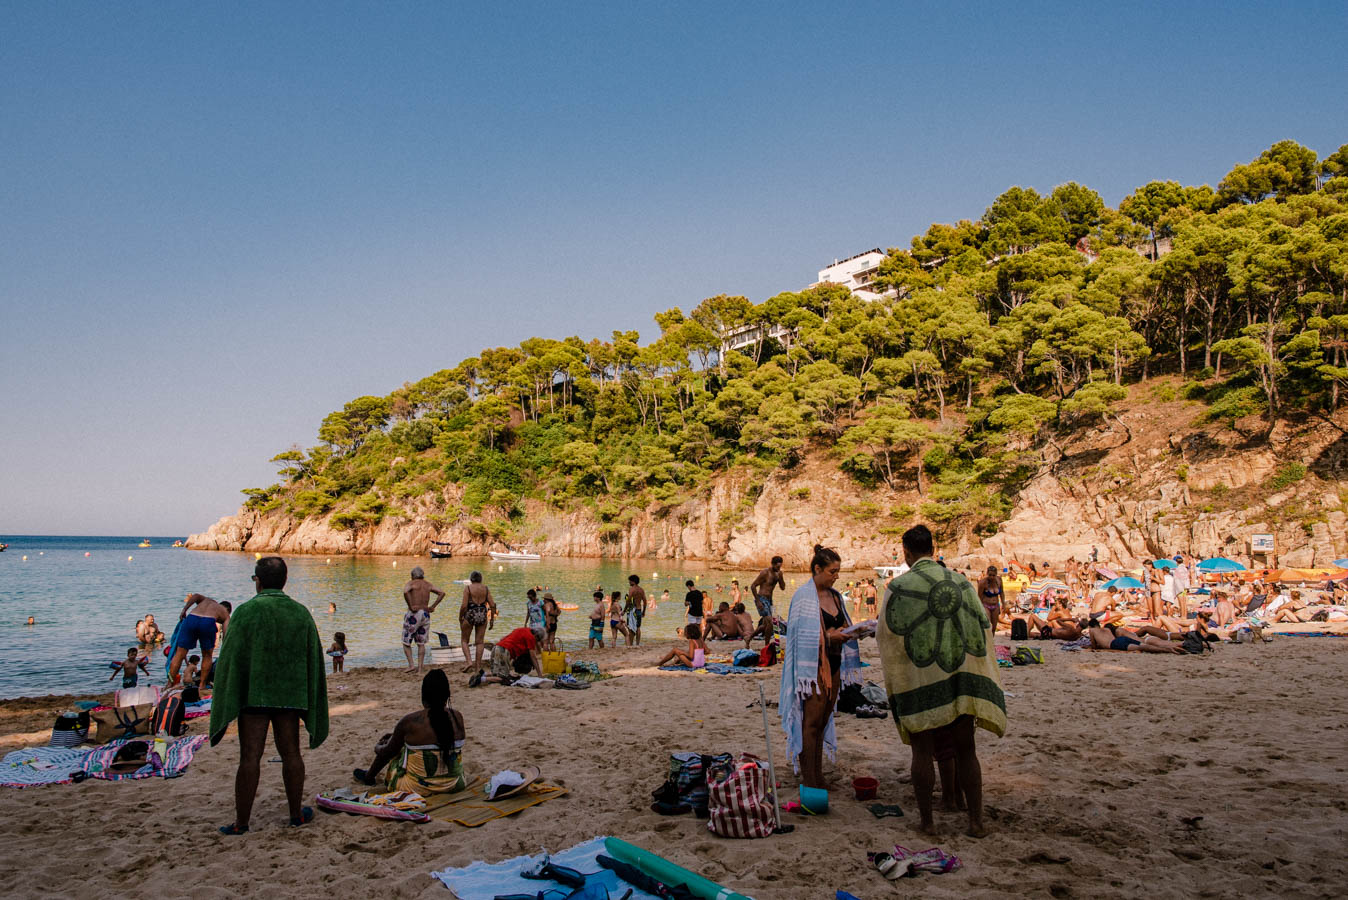 Aigua Blava is one of the best beaches on the Costa Brava in Spain